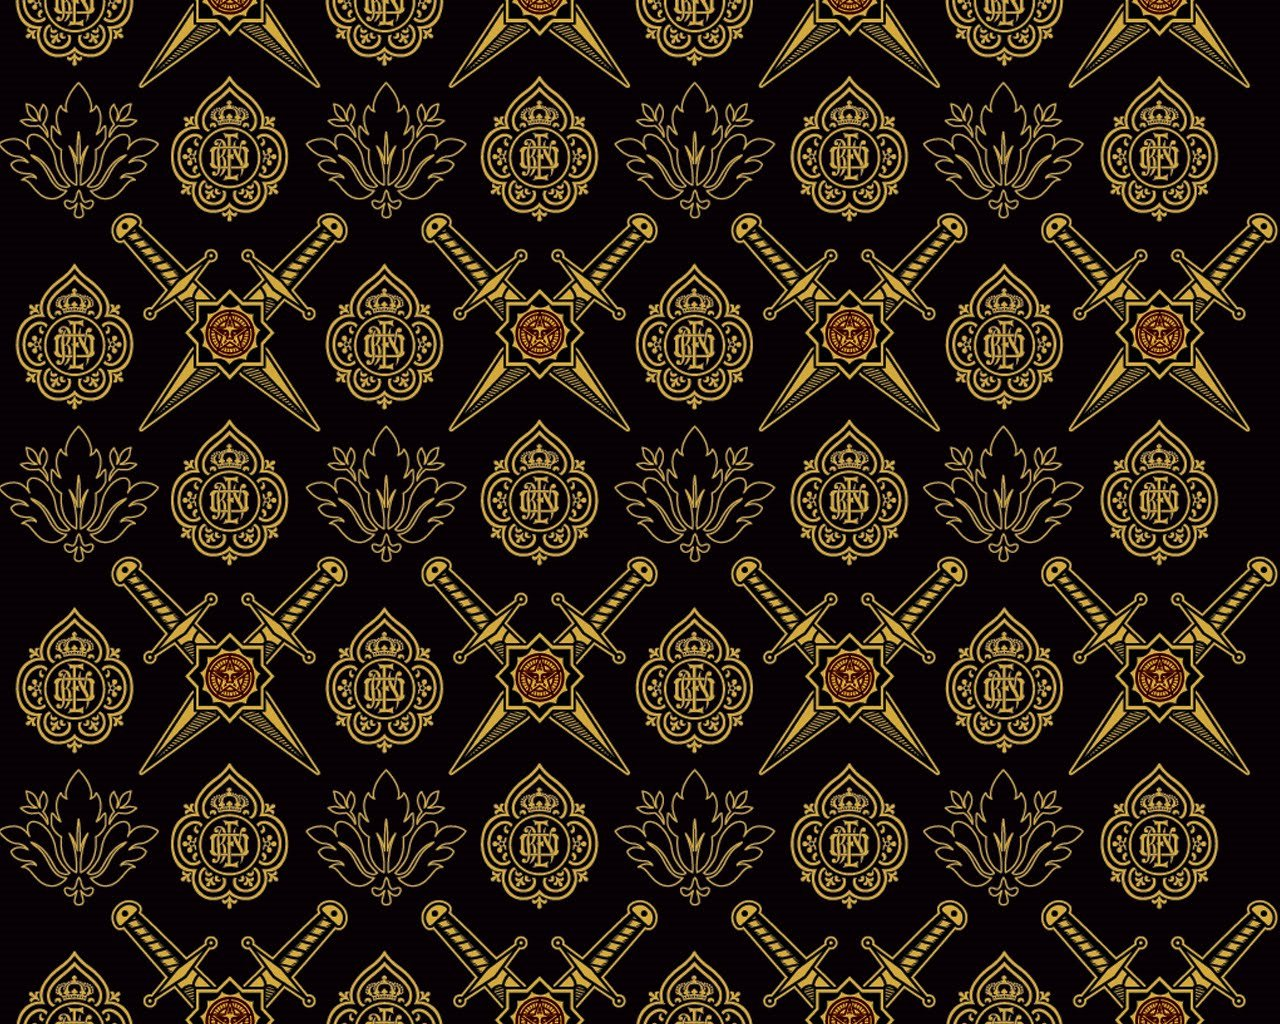 Cool Obey Backgrounds Obey wallpaper 1280x1024